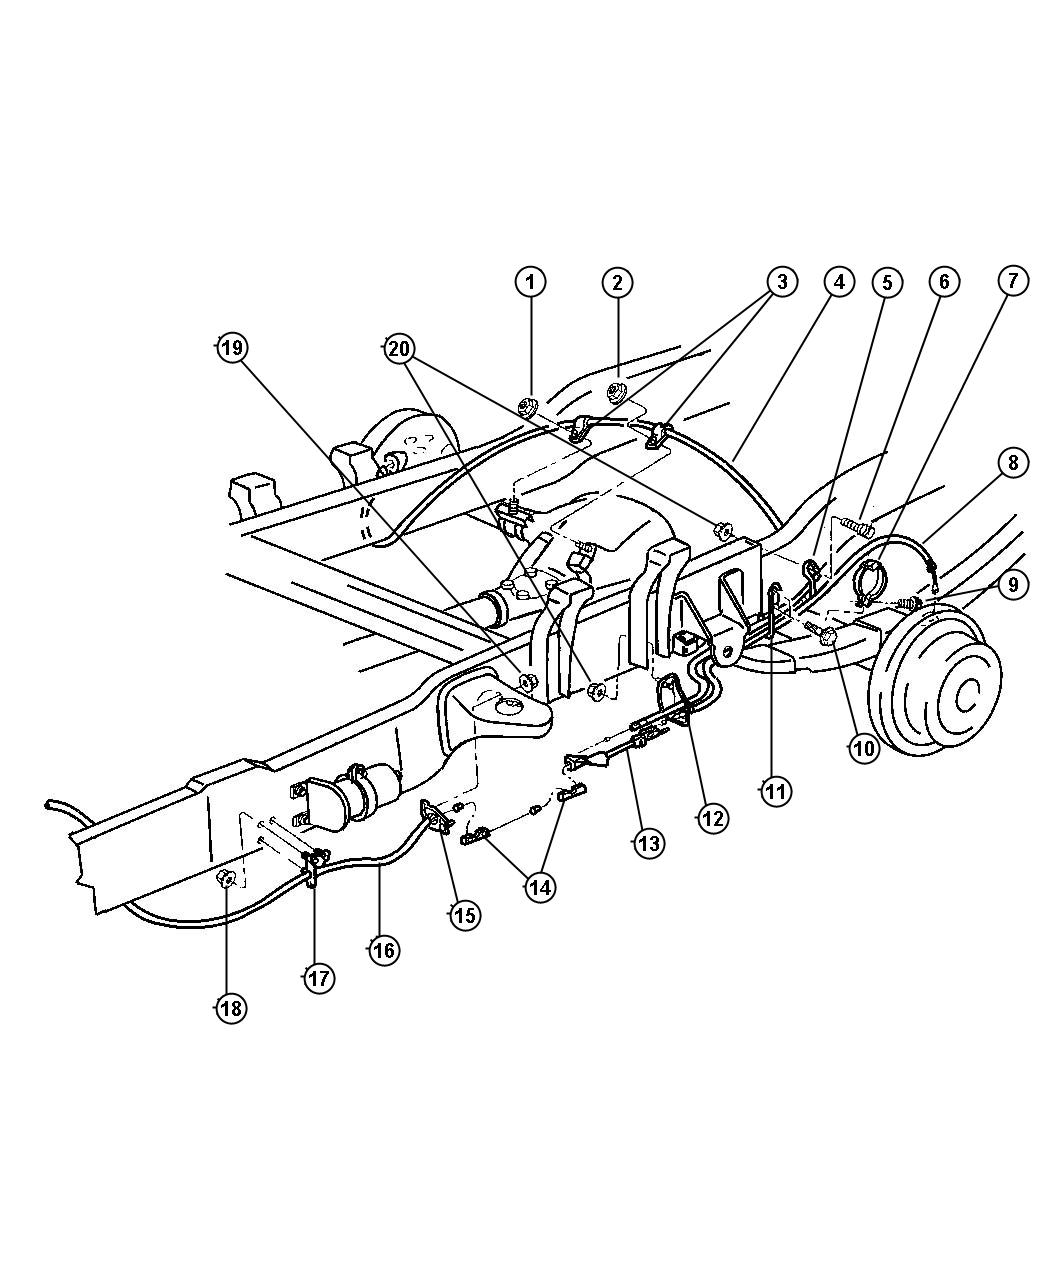 1998 dodge ram rear brake parts diagram  dodge  auto